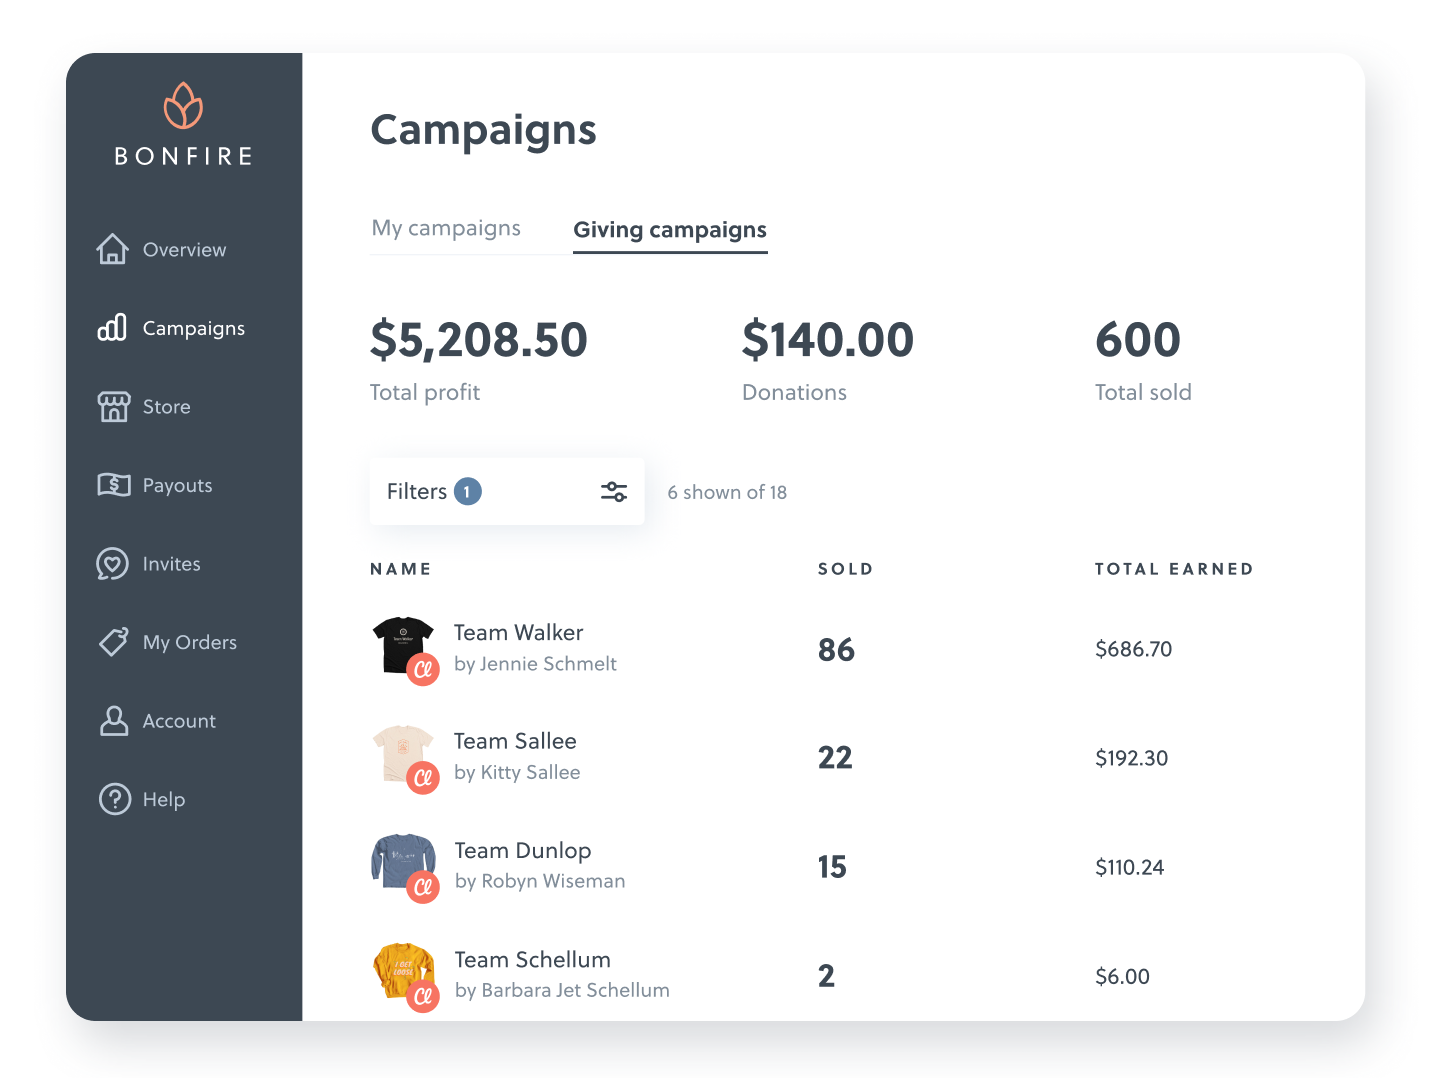 Use your Bonfire Campaign Dashboard to see the amount raised and the status of each Giving Campaign for your organization.